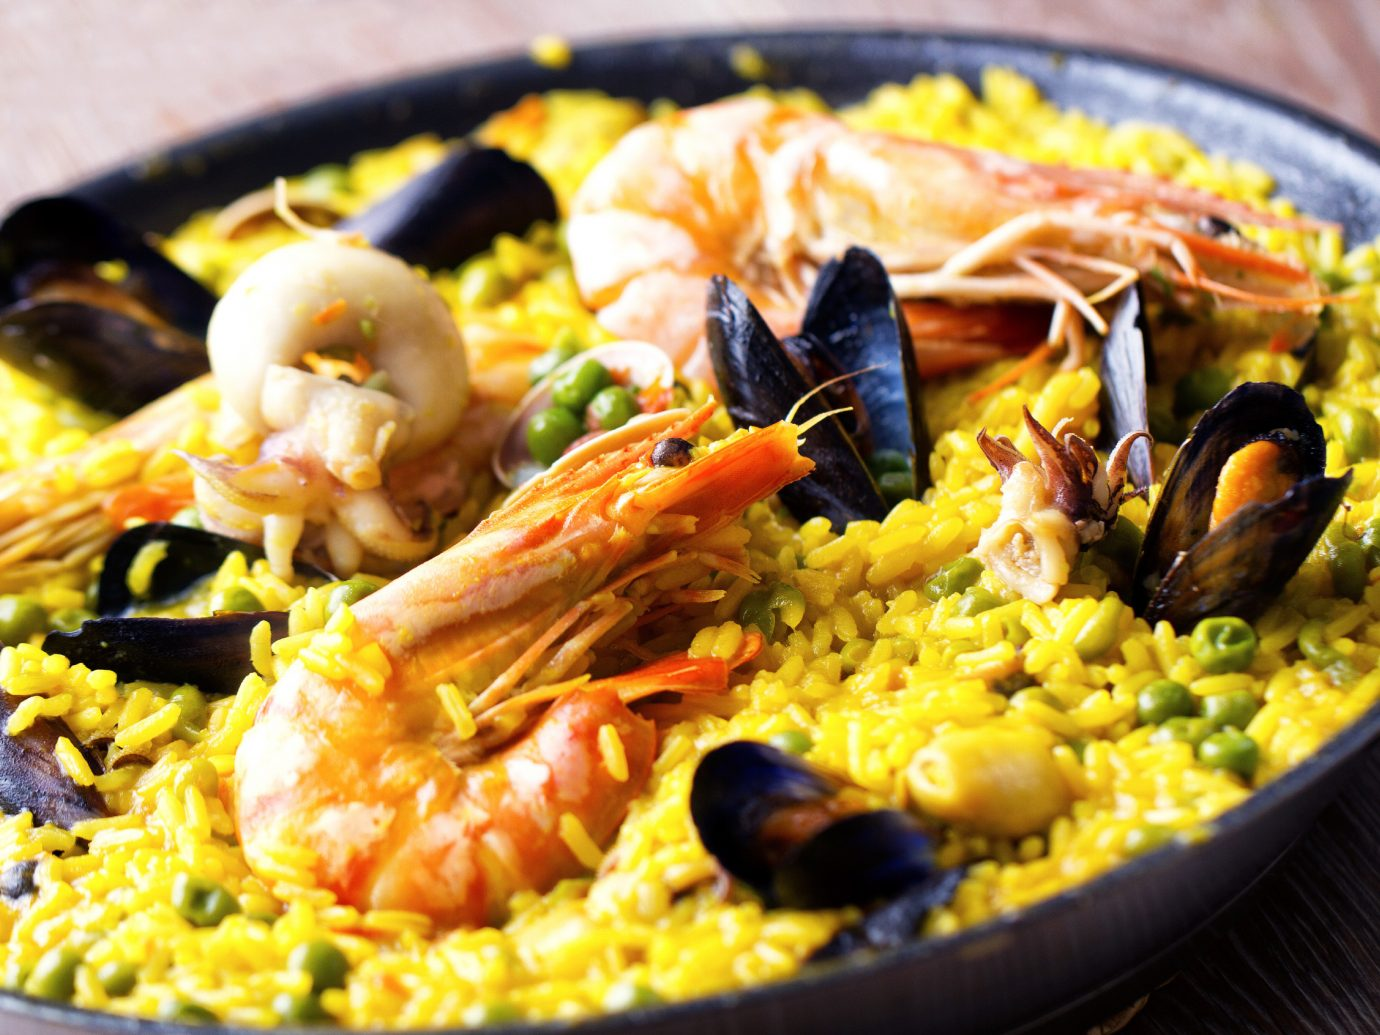 Dining Eat Food + Drink Resort food paella dish plate cuisine meal asian food european food thai food spanish cuisine fried rice